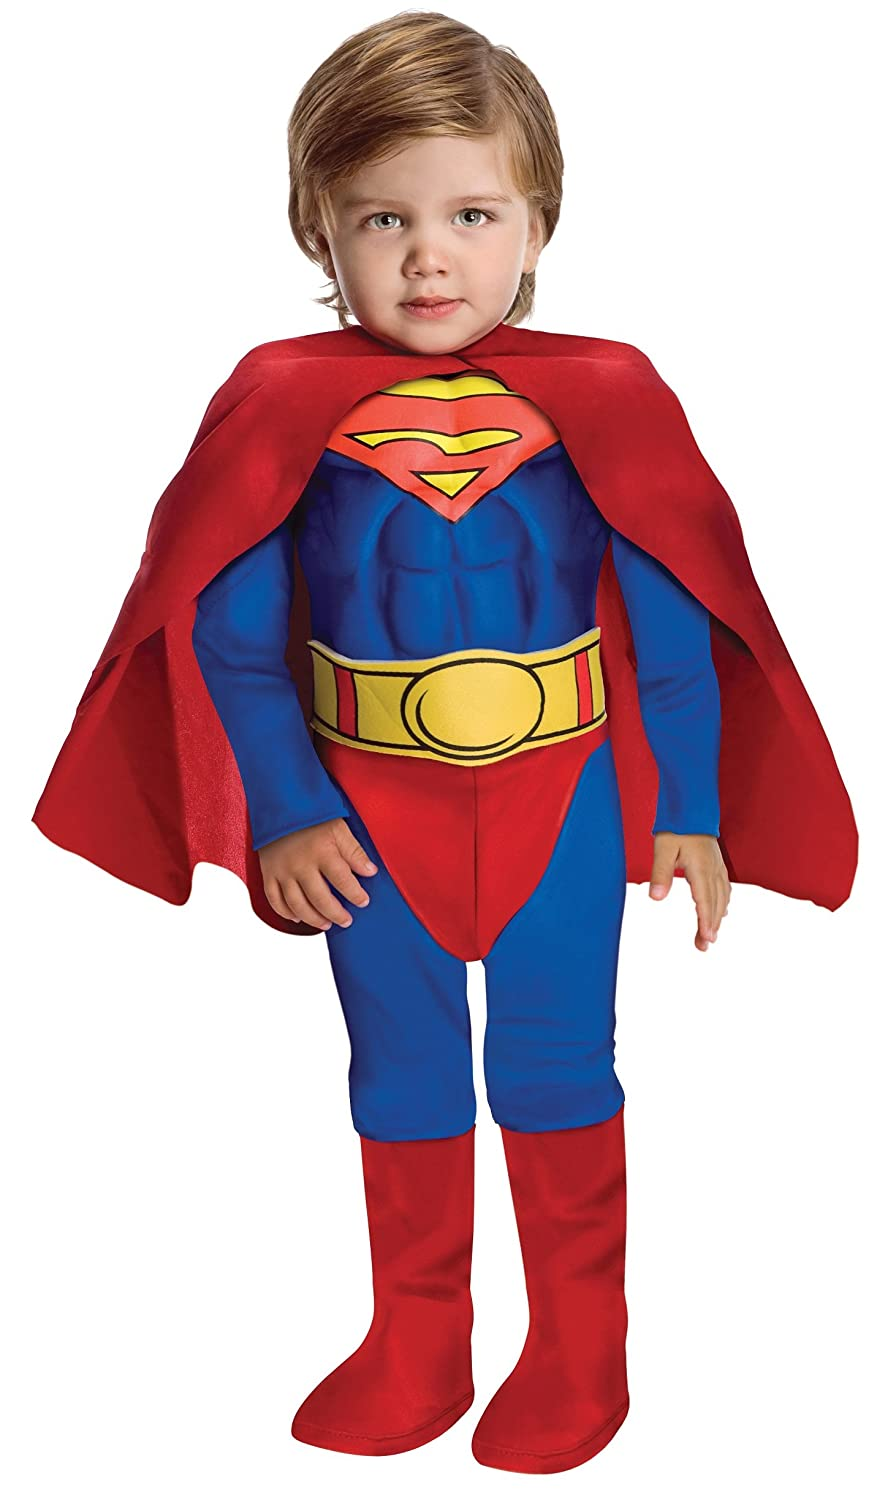 Amazon.com Super DC Heroes Deluxe Muscle Chest Superman Costume Toddler Toys u0026 Games  sc 1 st  Amazon.com & Amazon.com: Super DC Heroes Deluxe Muscle Chest Superman Costume ...